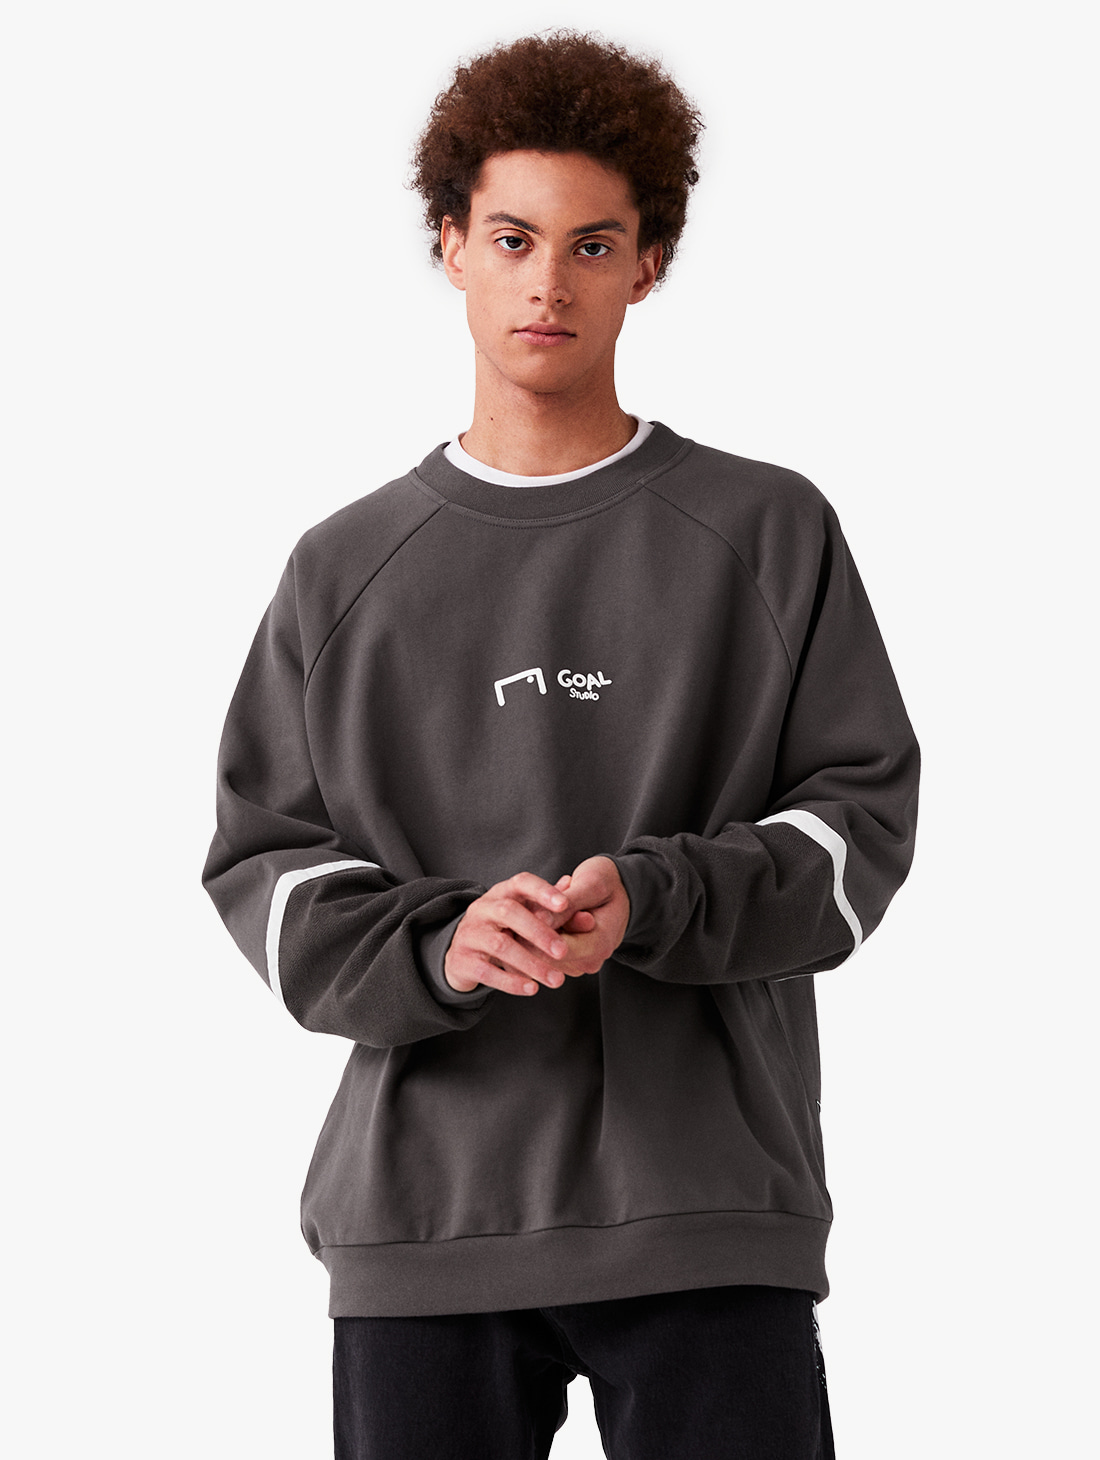 GOALSTUDIO CFC STADIUM DRAWING SWEATSHIRT (2 Colors)